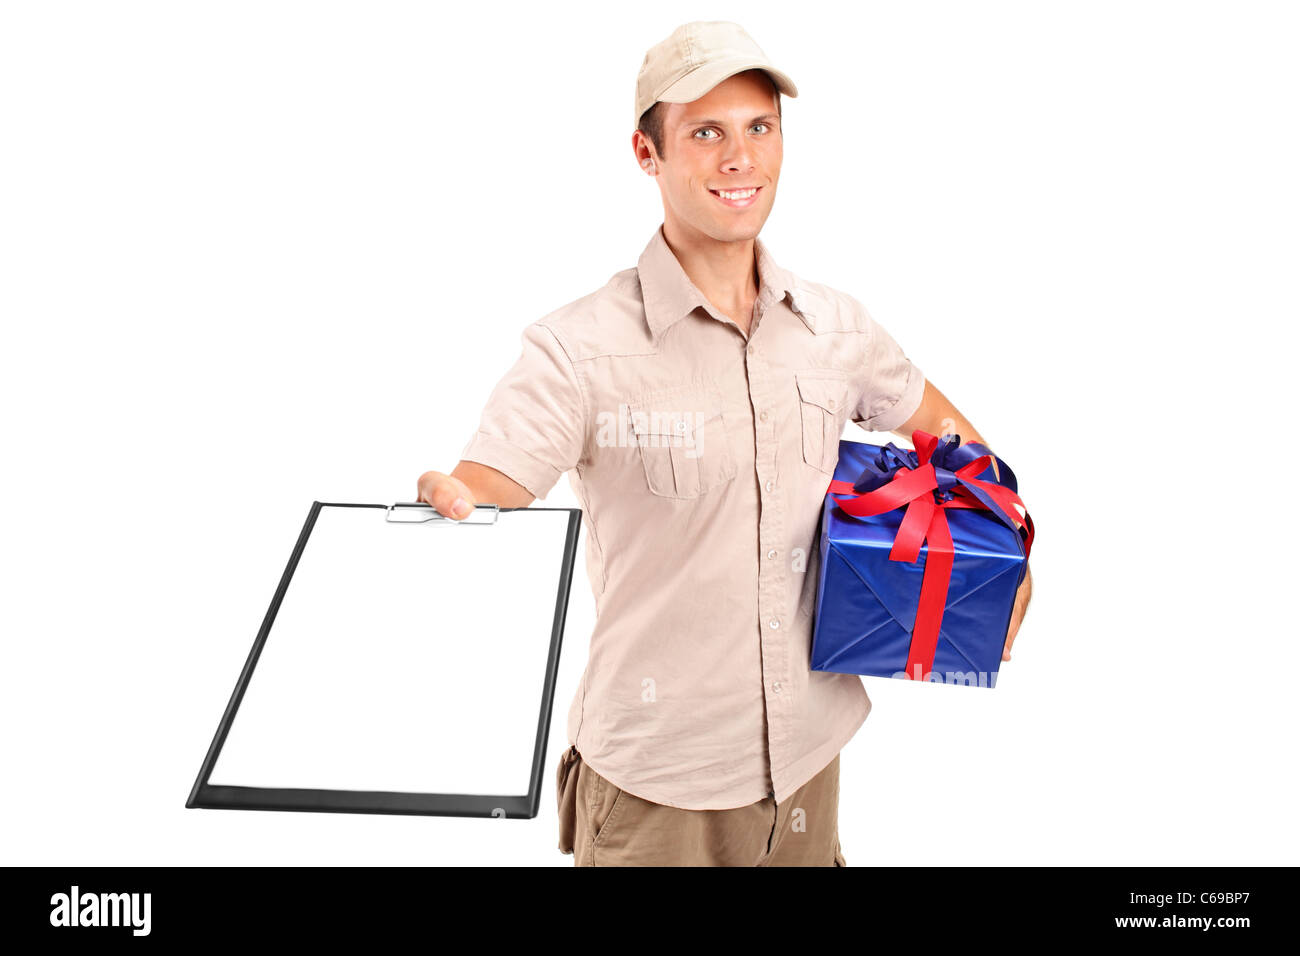 Delivery person delivering a gift and holding a clipboard - Stock Image